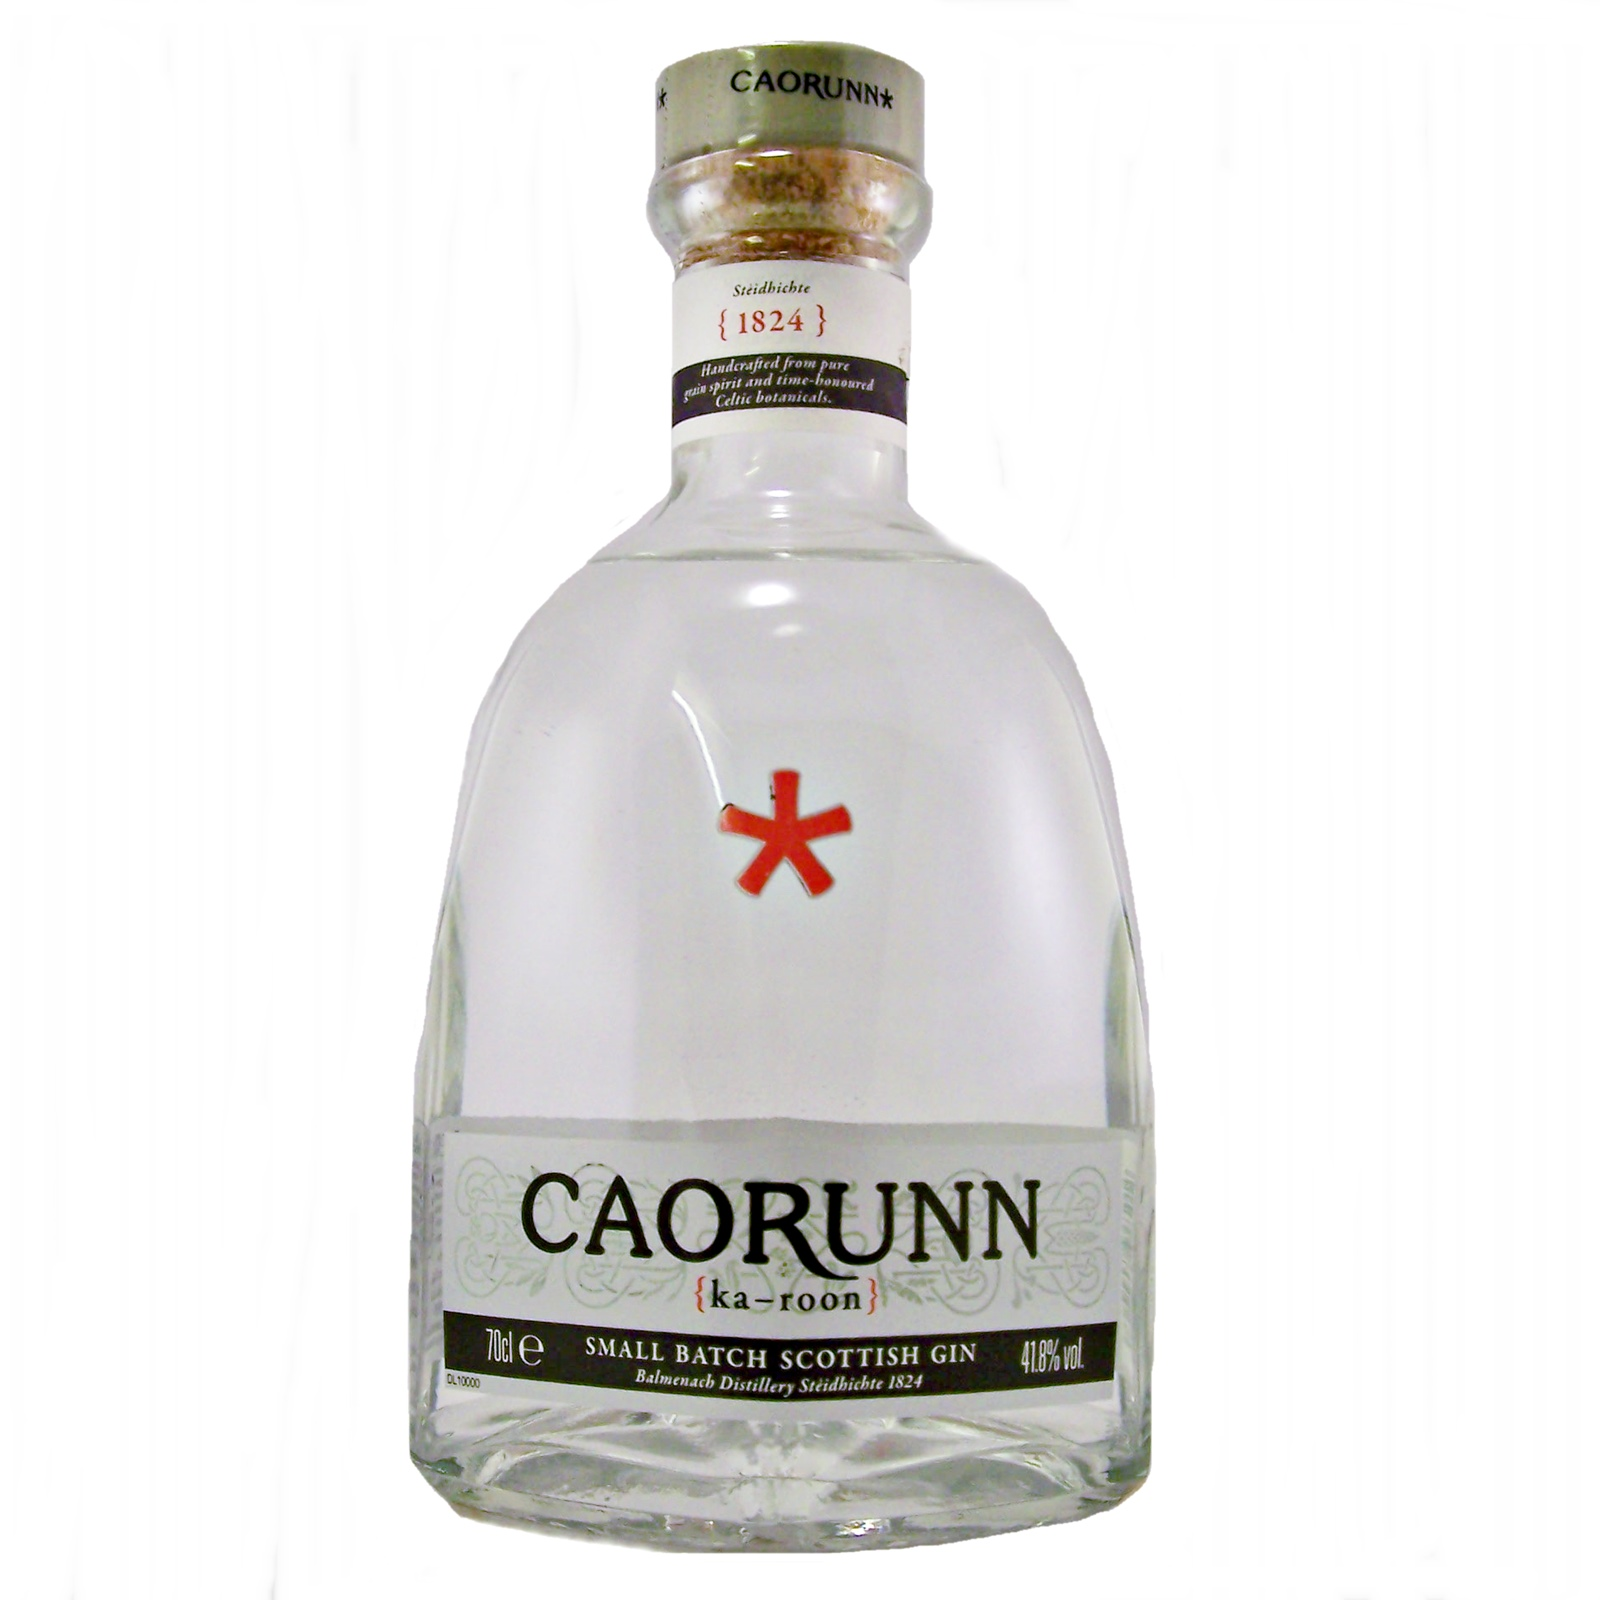 Caorunn Small Batch Scottish Gin Buy Online Whiskys Co Uk